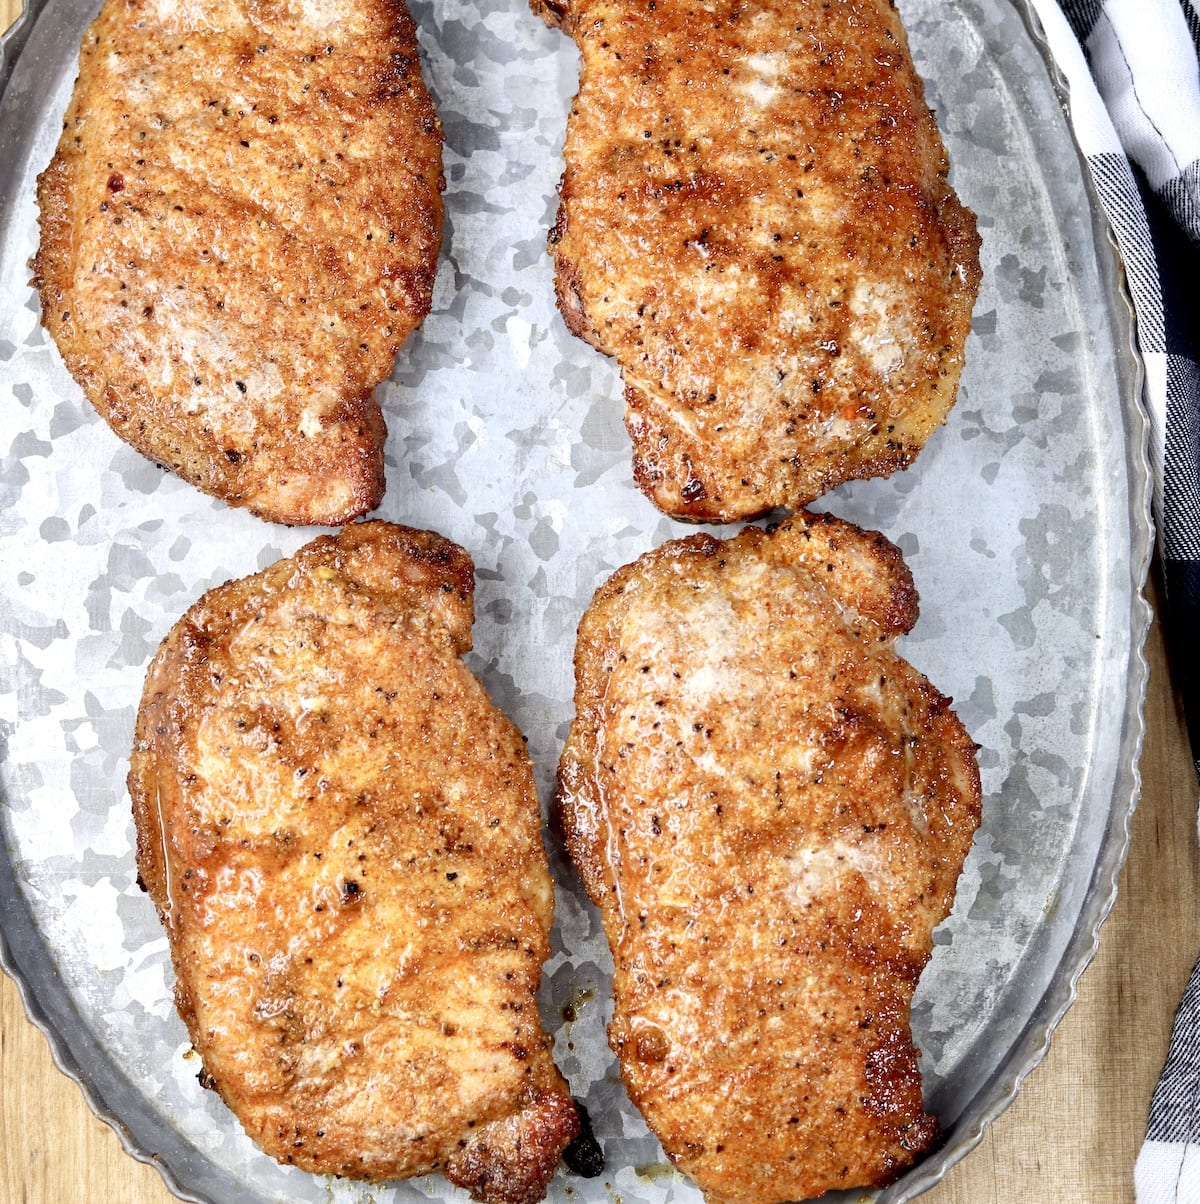 Brown Sugar Pork Chops on a platter